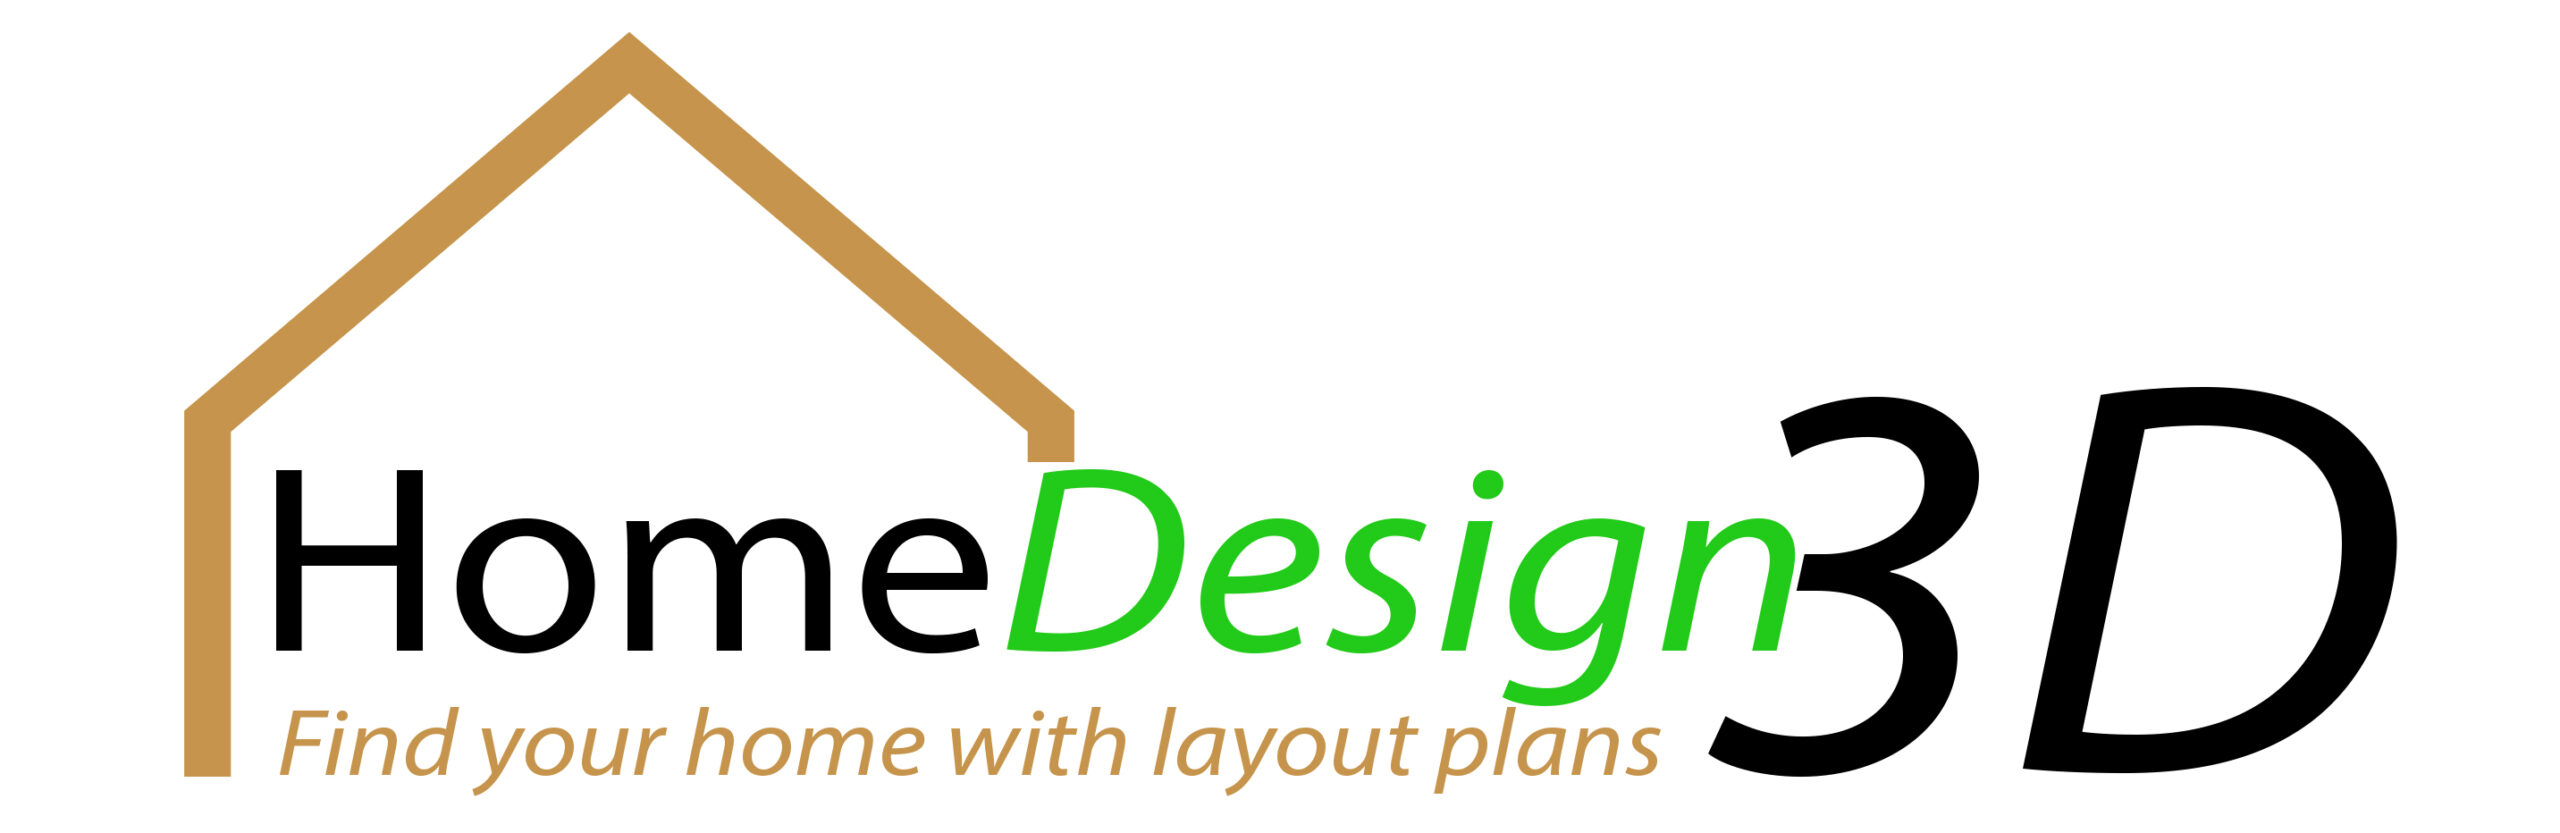 Home design 3d logo